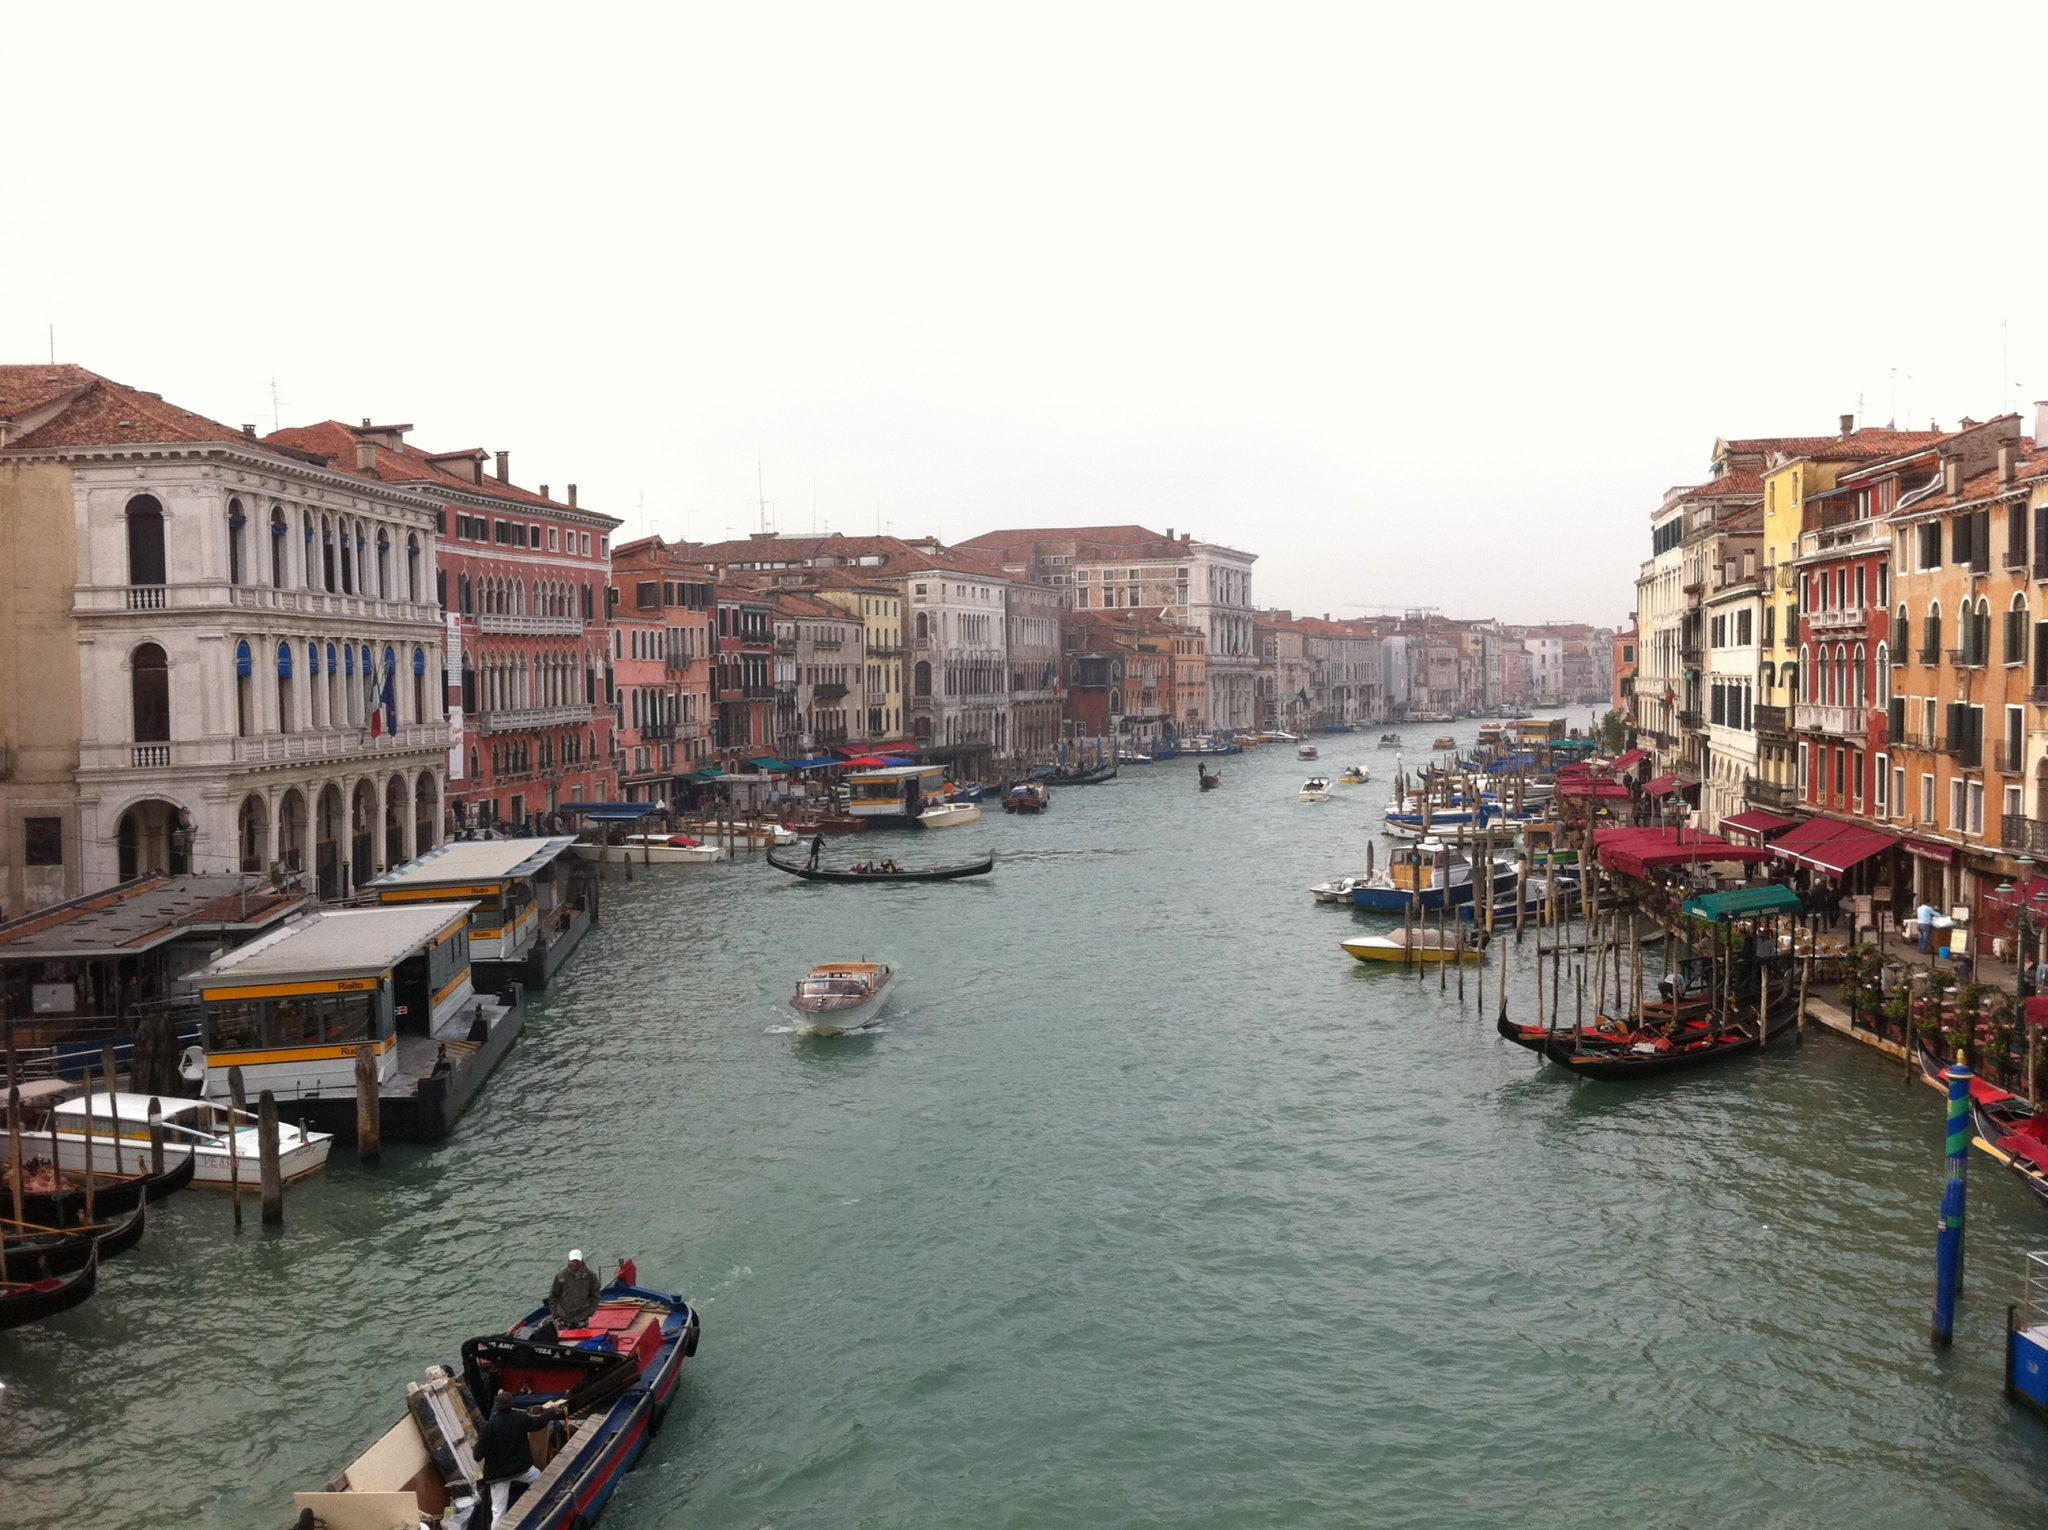 Grand Canal Venice, Italy - What To Do After Retirement? Save The World Of Course!